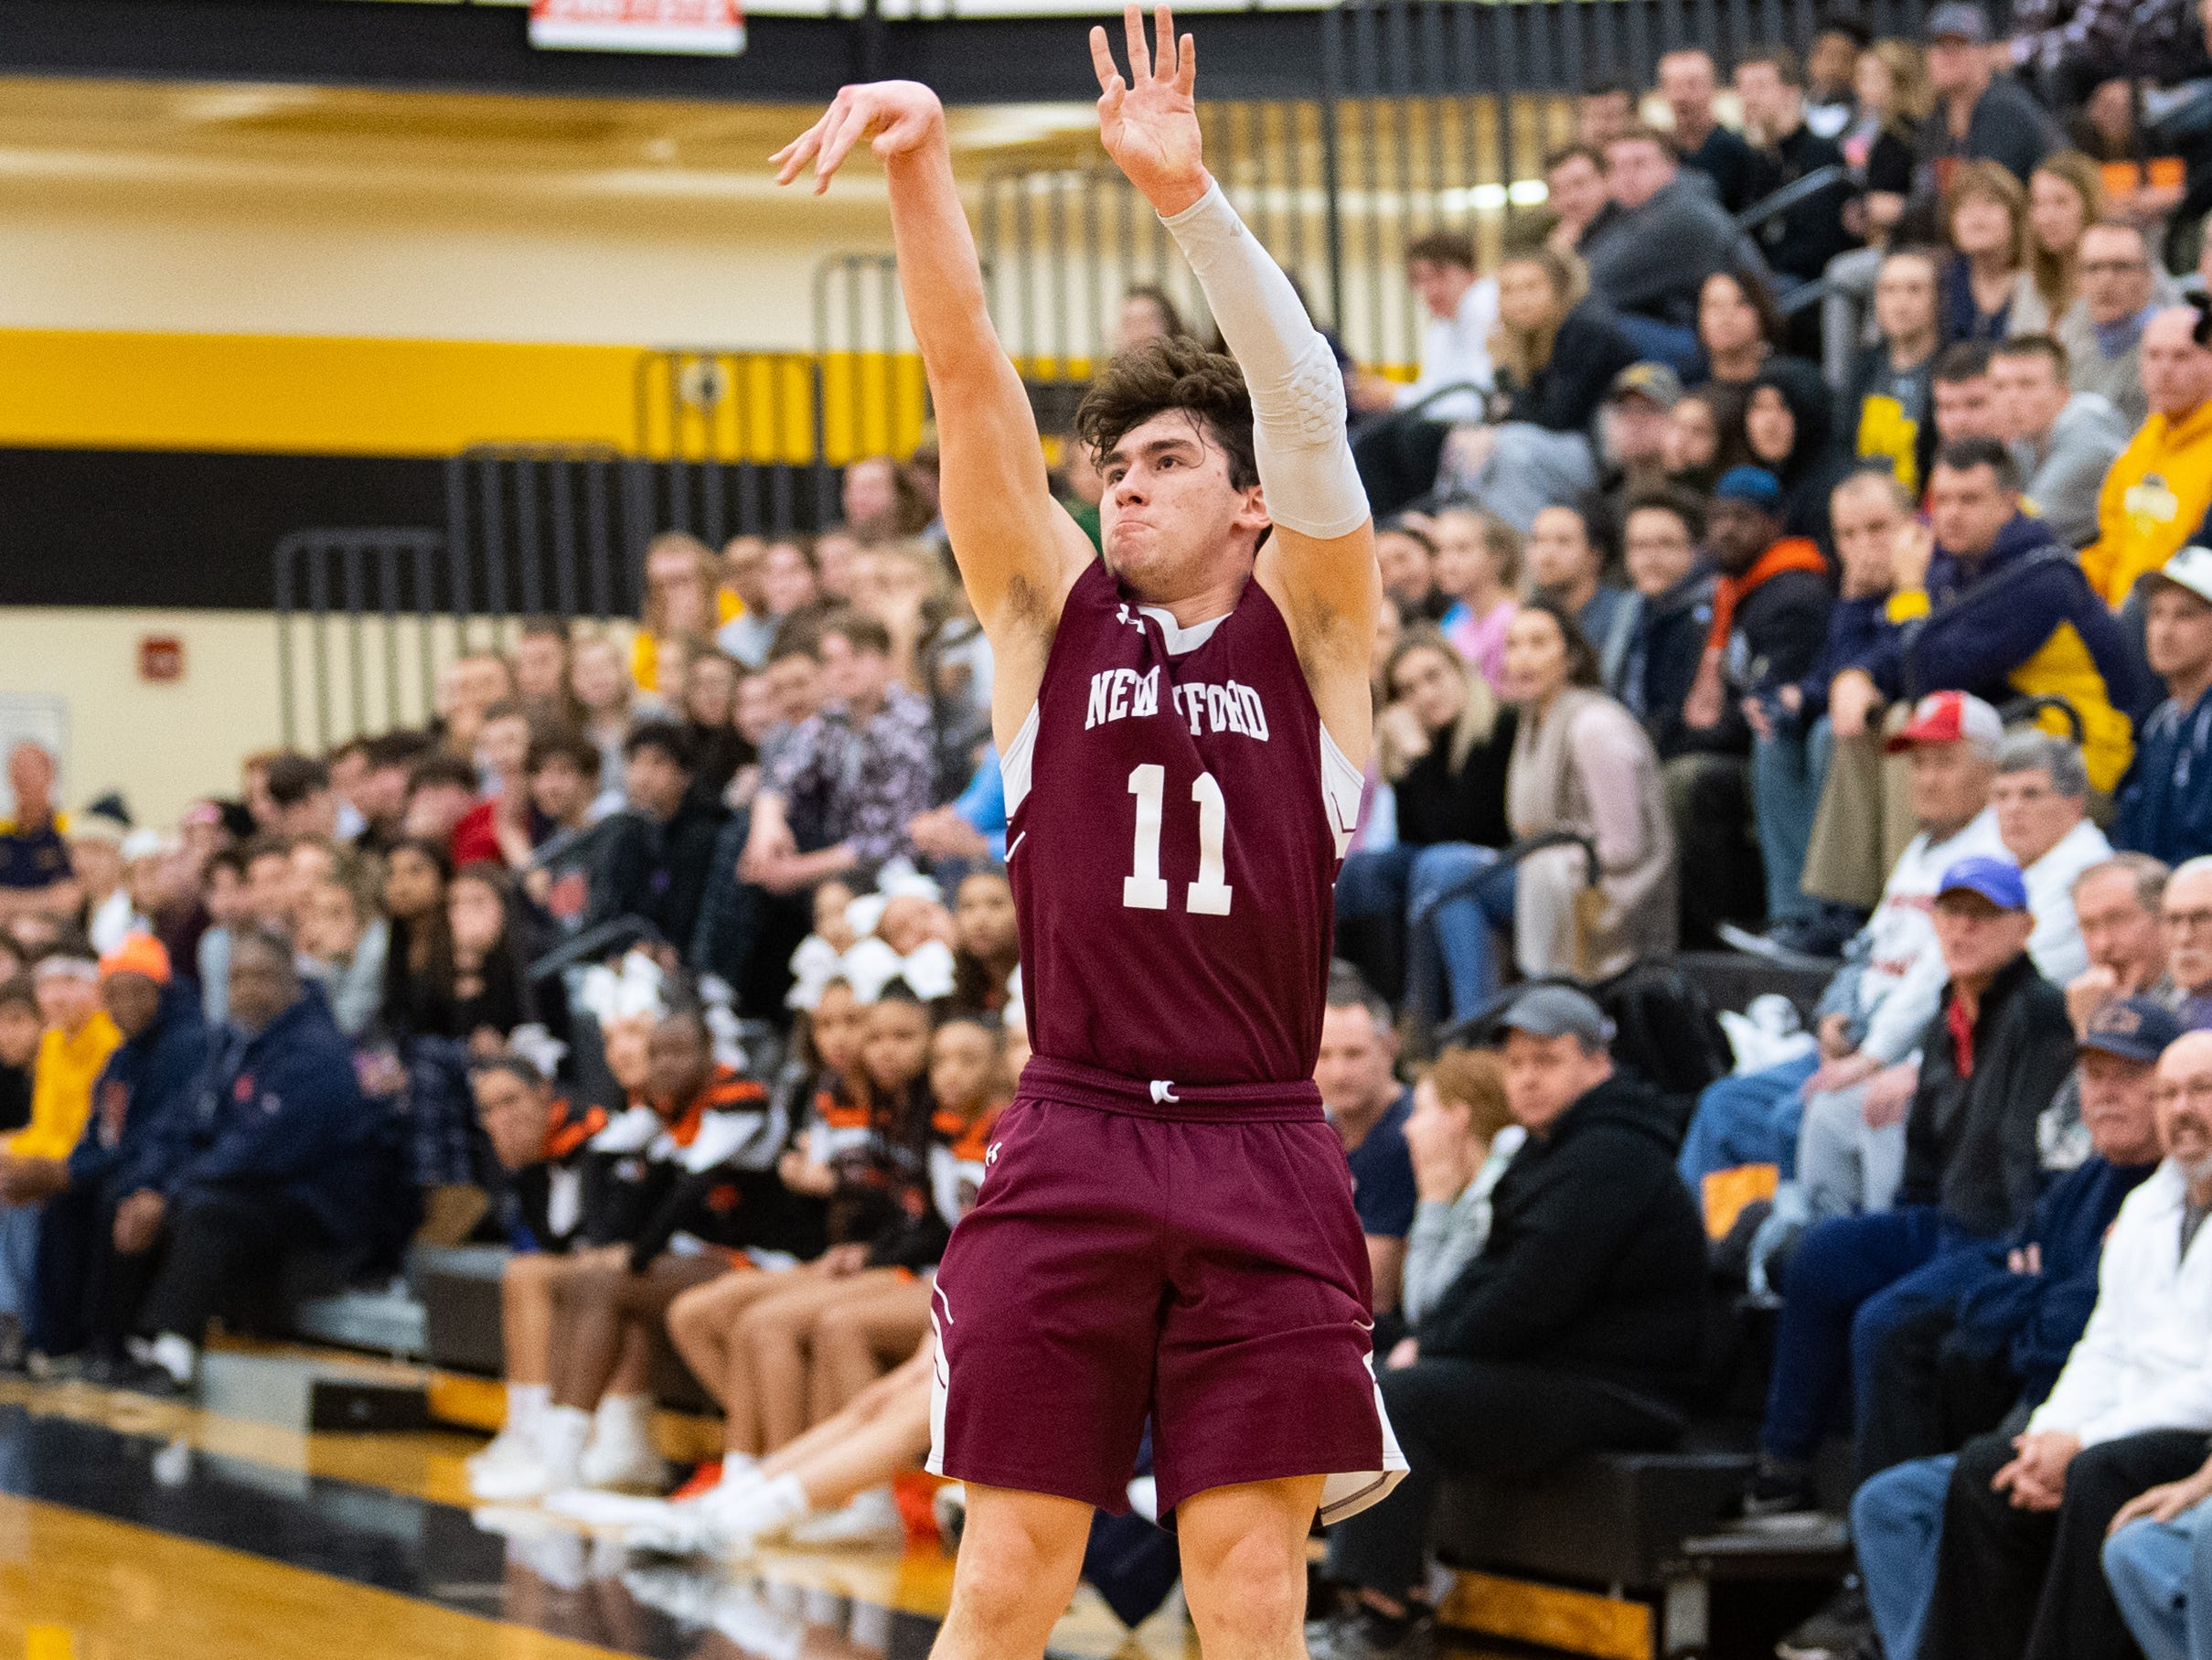 Noah Strausbaugh (11) takes the open shot during the YAIAA boys' basketball semifinals between Central York and New Oxford, Wednesday, February 13, 2019 at Red Lion Area High School. The Colonials defeated the Panthers 43 to 41.